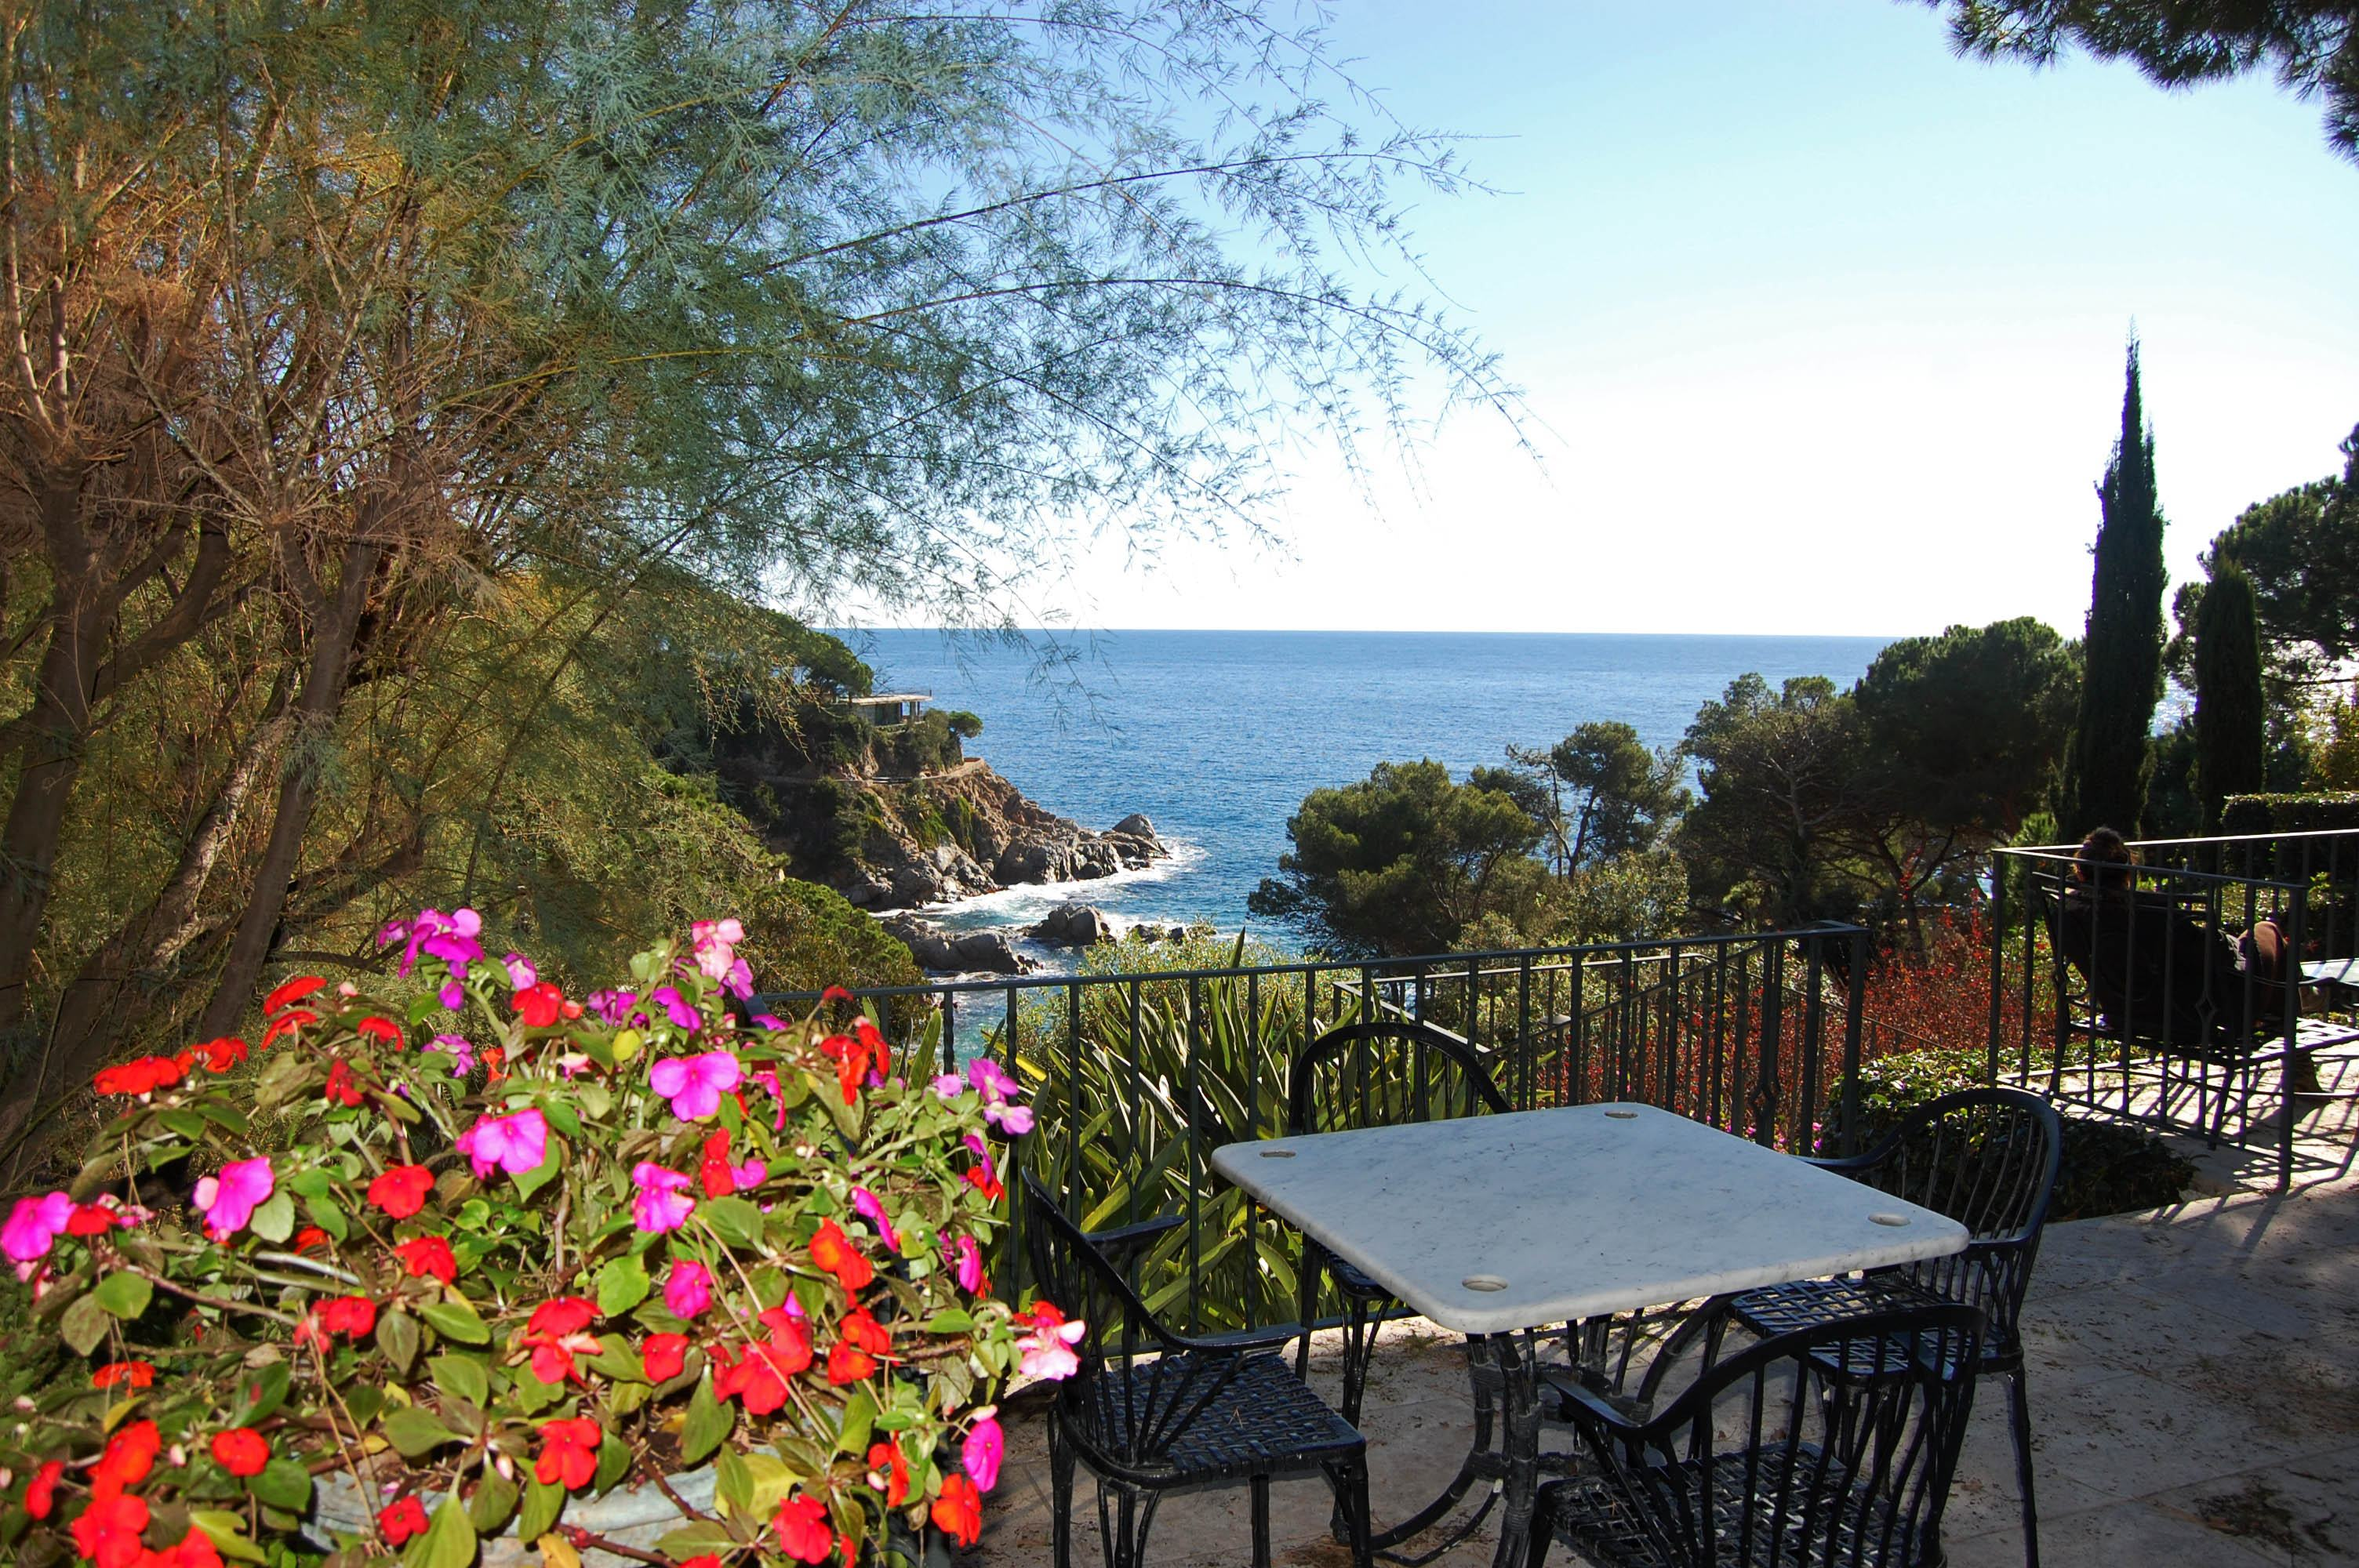 Casa Unifamiliar por un Venta en Magnificent mansion in unique location Lloret De Mar, Costa Brava, 17310 España